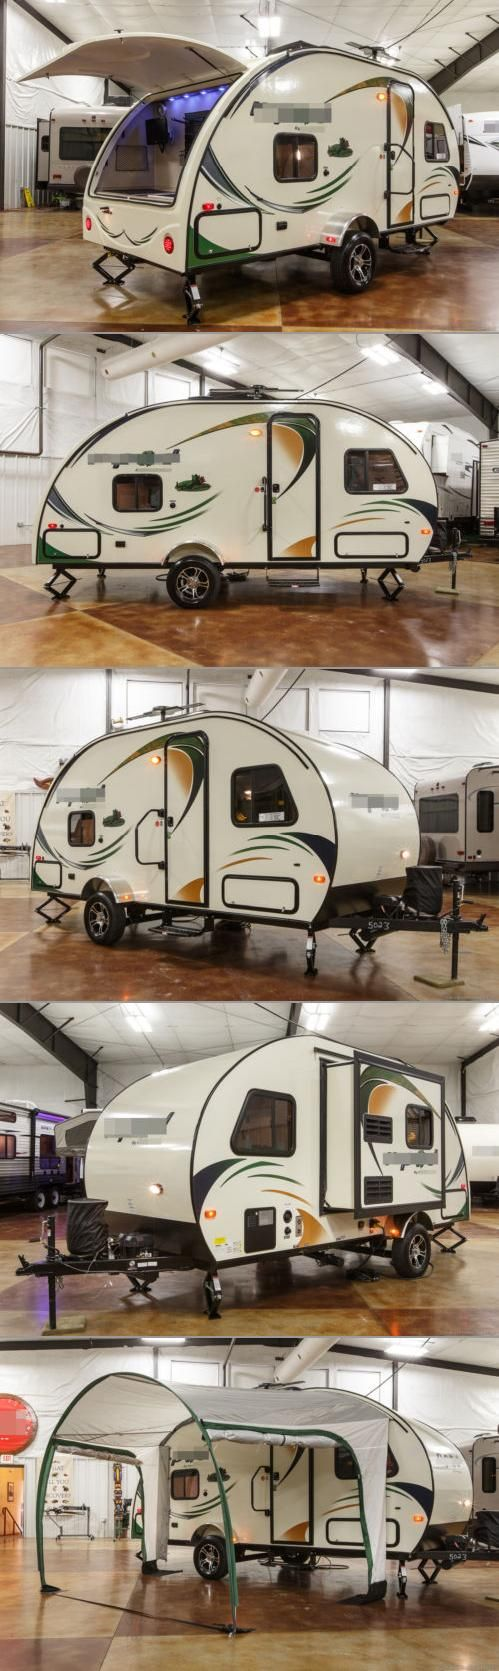 New 2015 Lightweight Slide Out Ultra Lite Bunkhouse Travel Trailer Bunks - Best 25+ Bunkhouse Travel Trailer Ideas Only On Pinterest